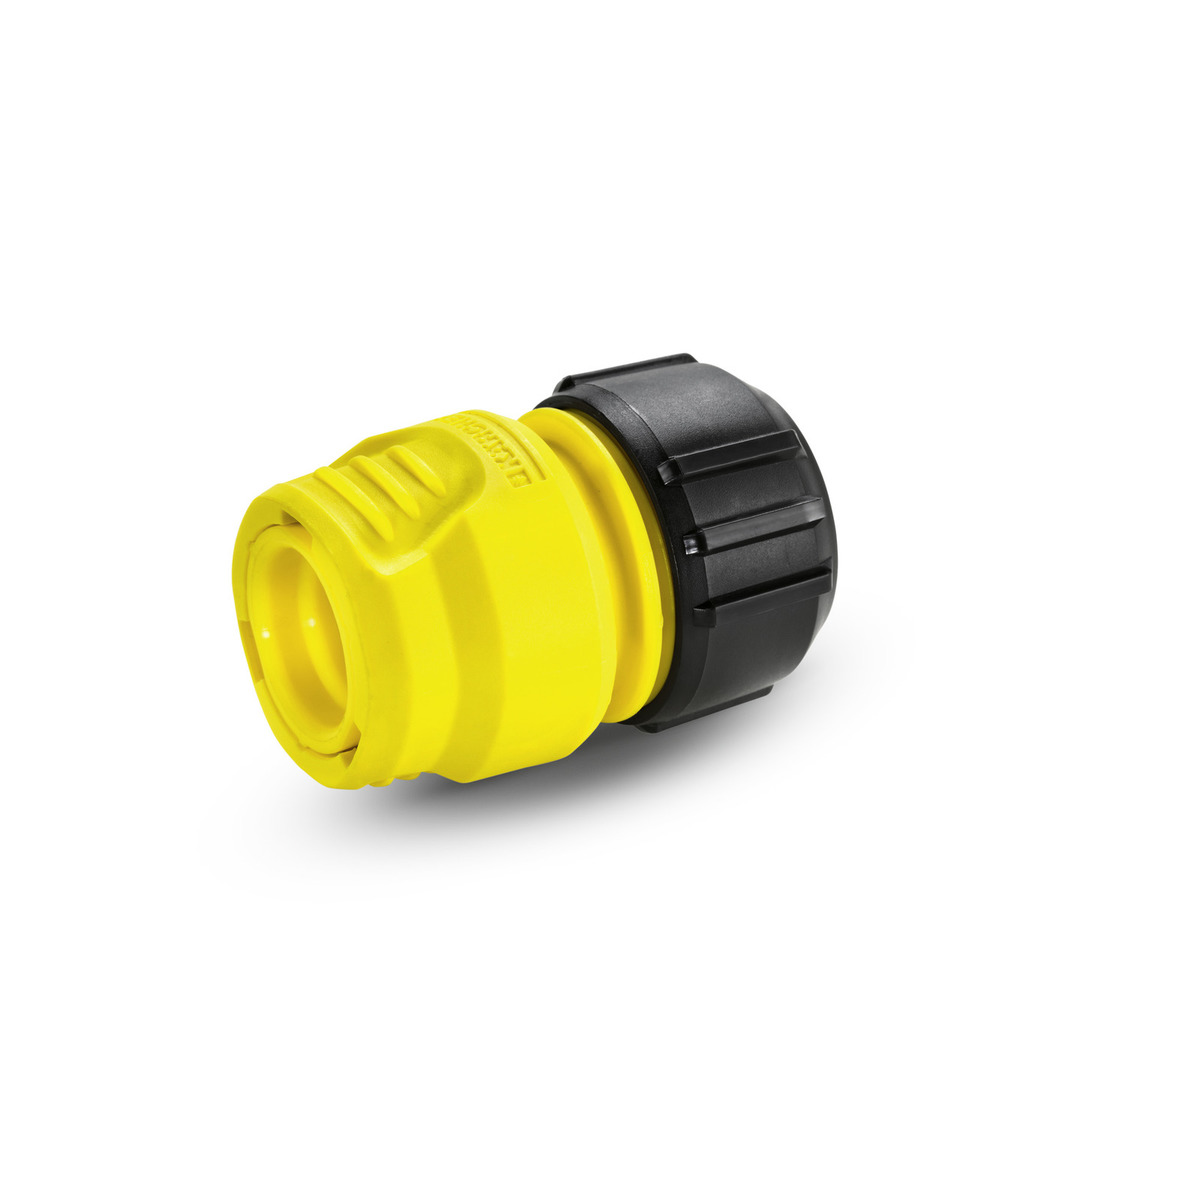 Karcher Universal Connector